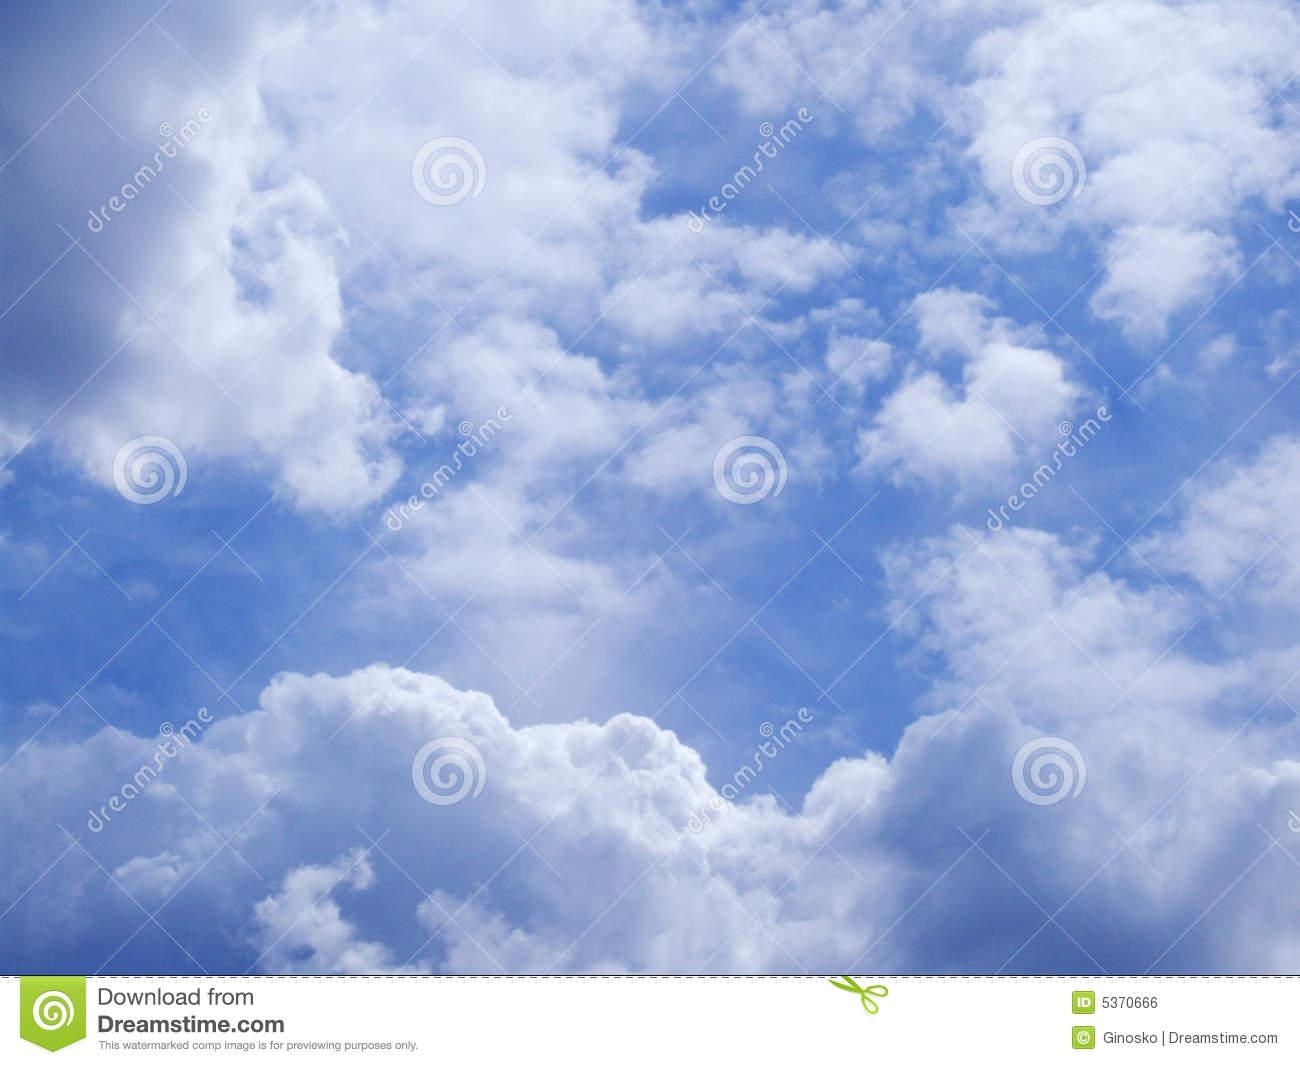 Flying over clouds 5370666 jpg